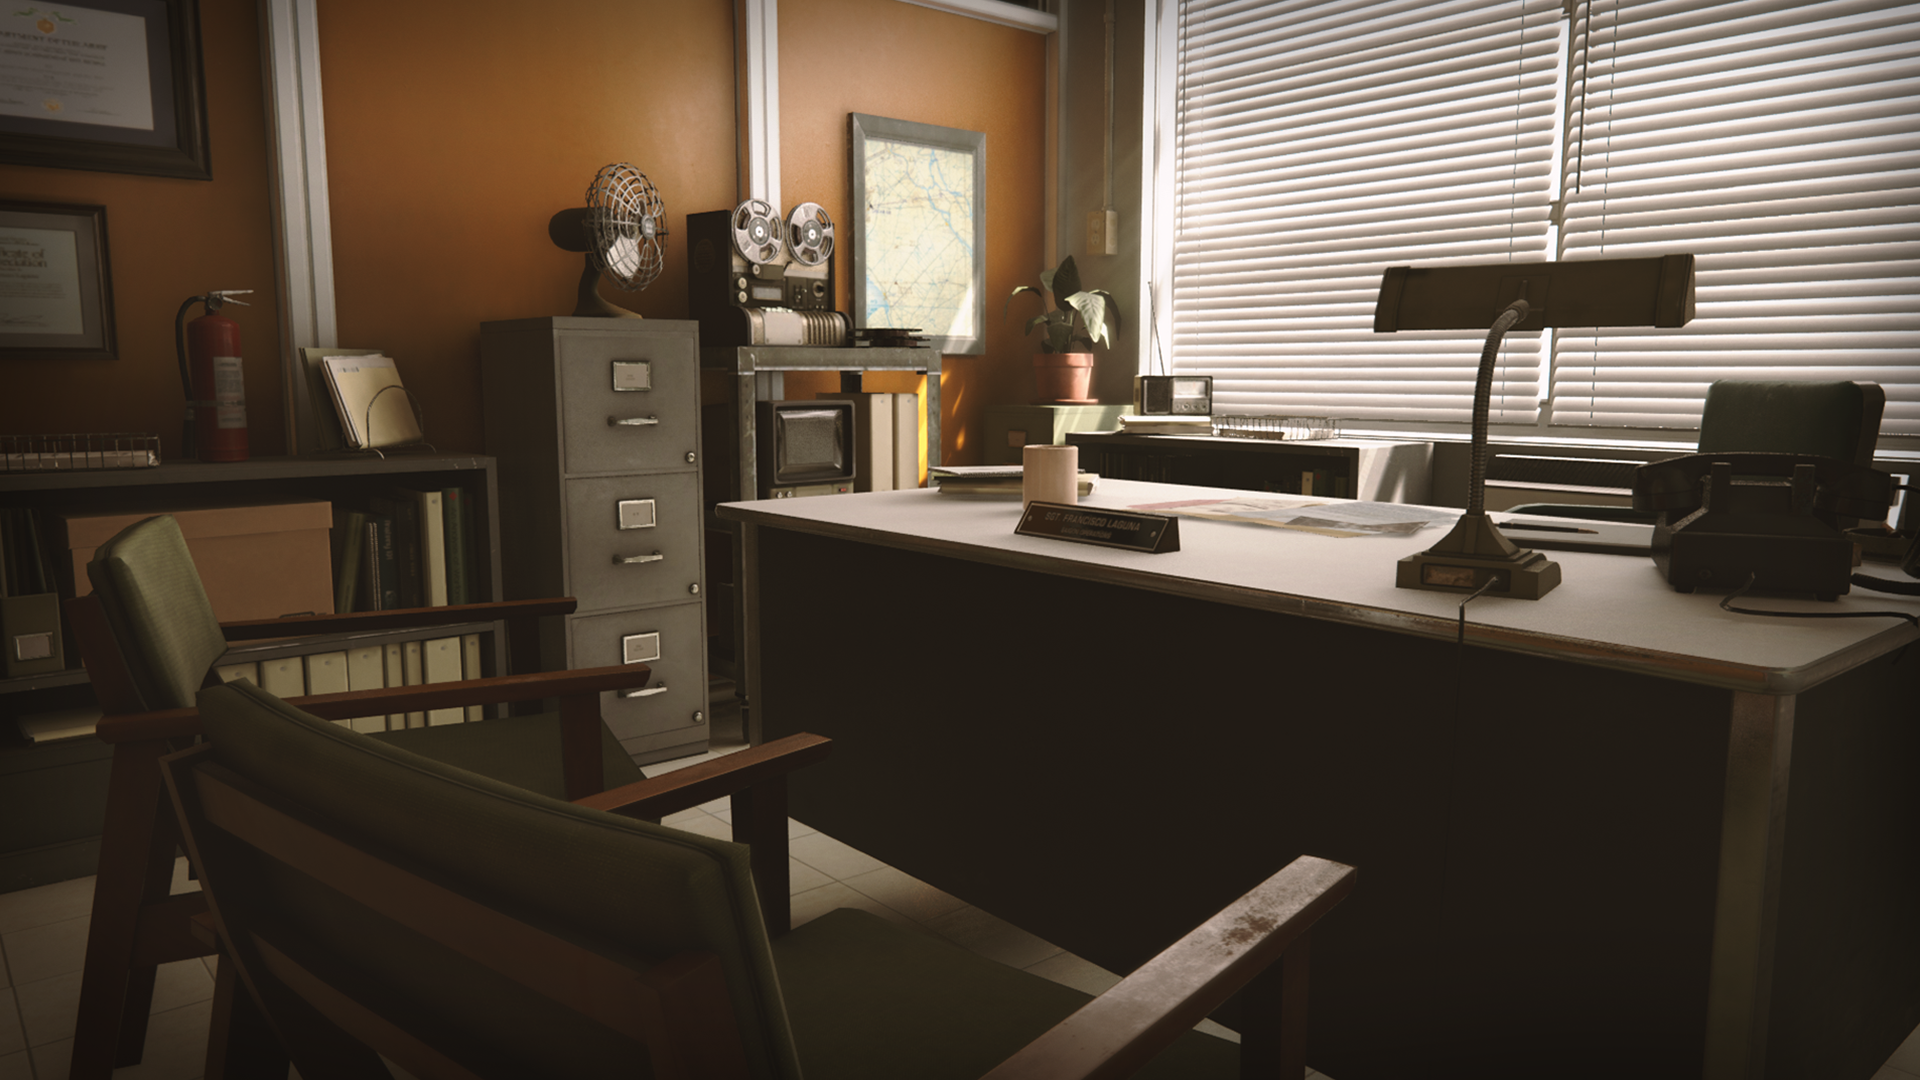 retro office environment by clinton crumpler in environments ue4